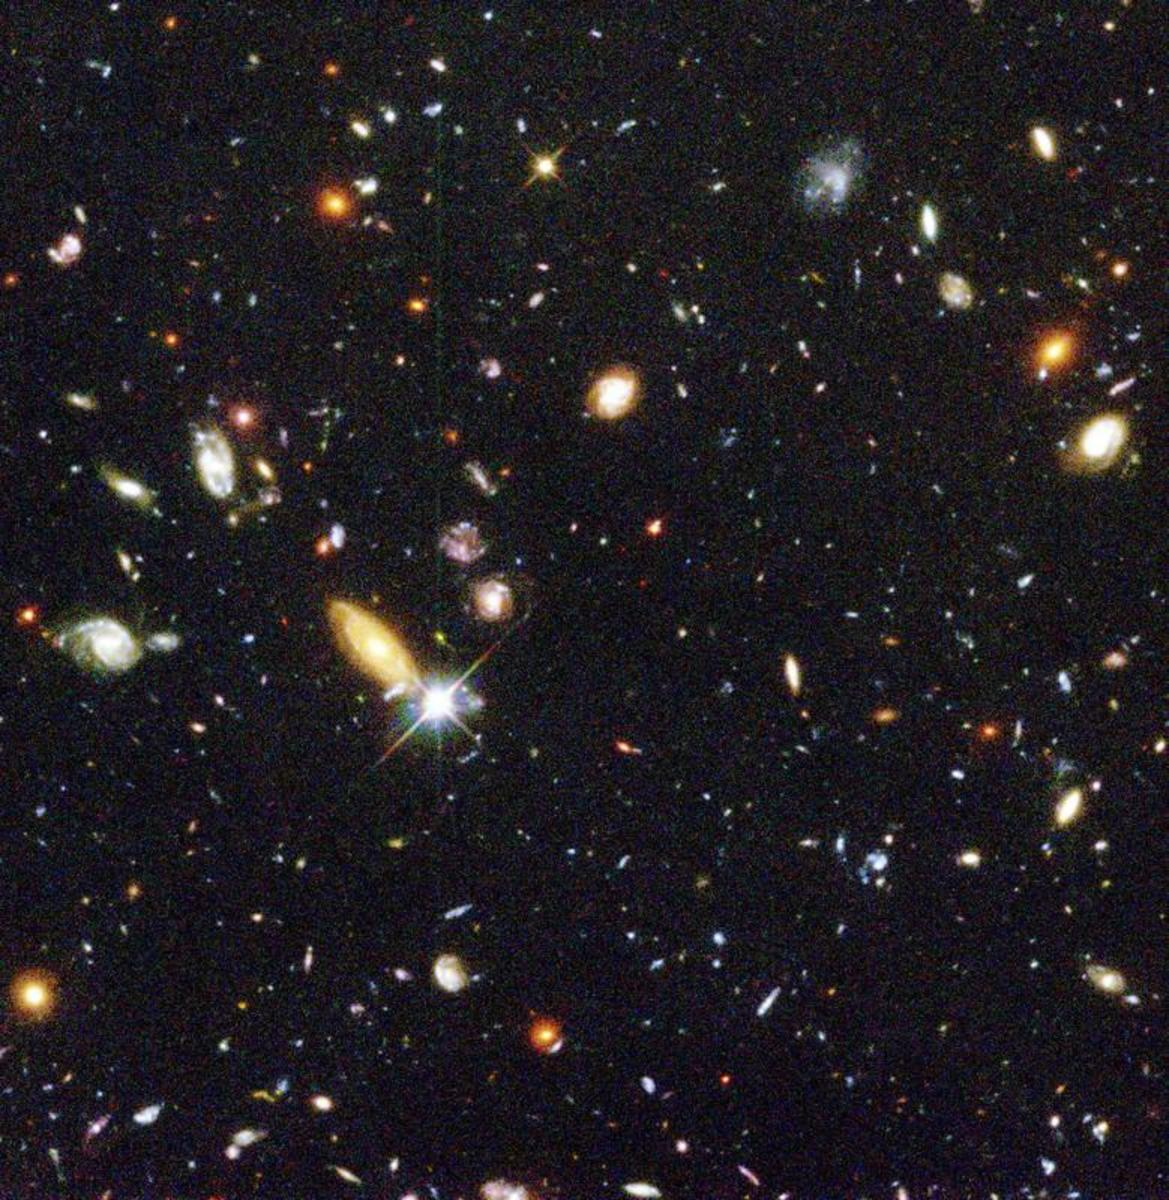 The Deep Field Image taken by the Hubble Space Telescope. Because light from these galaxies takes so long to reach us, we are looking back in time to the very beginnings of the Universe. But space is not as crowded as this image makes it appear...